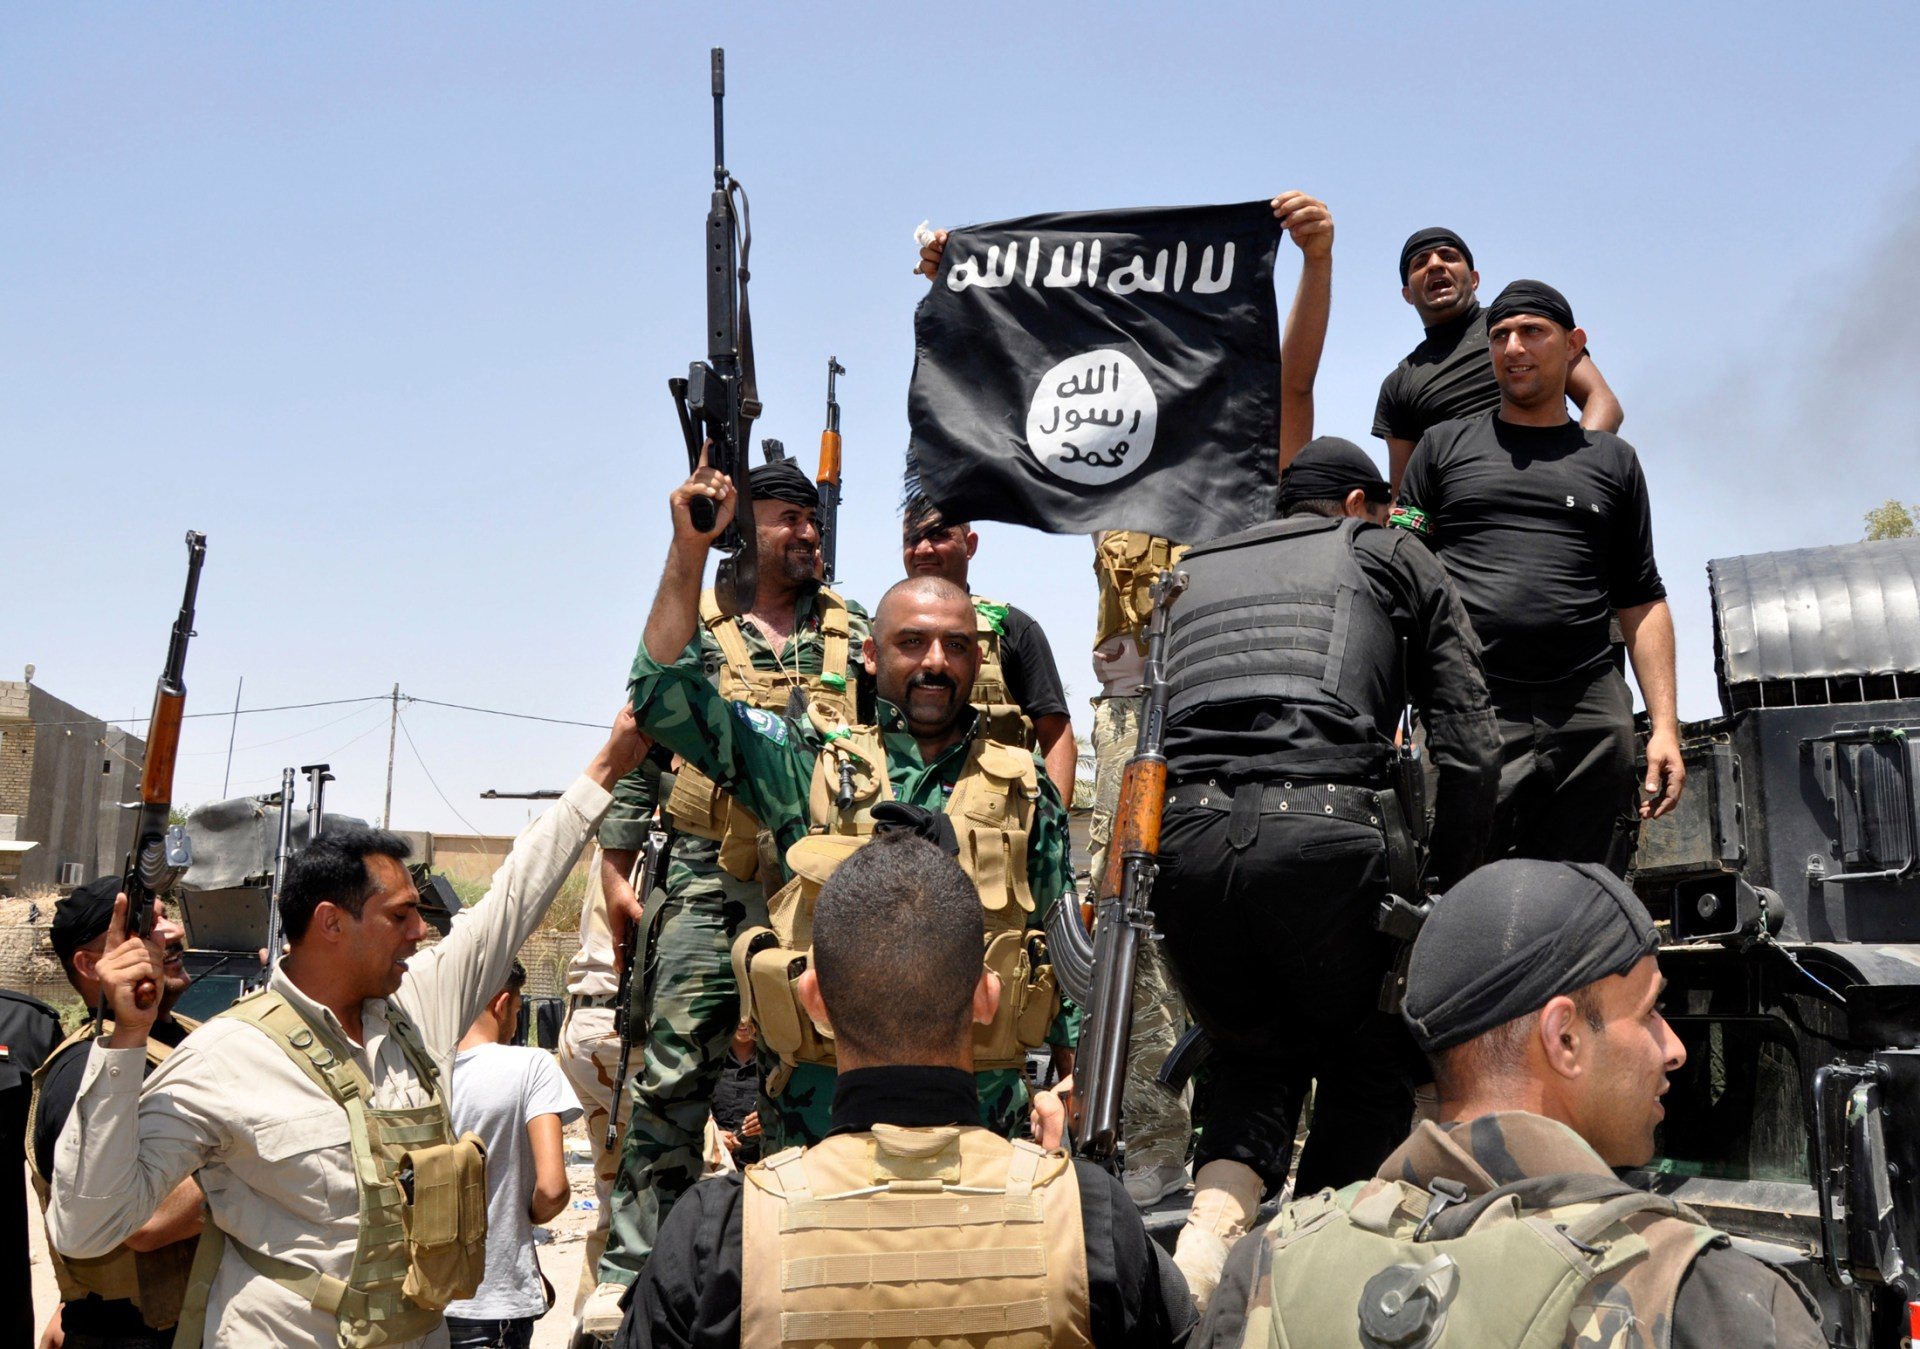 Reuters - Iraqi security forces pull down a flag belonging to Sunni militant group Islamic State of Iraq and the Levant (ISIL) during a patrol in the town of Dalli Abbas in Diyala province, June 30, 2014.